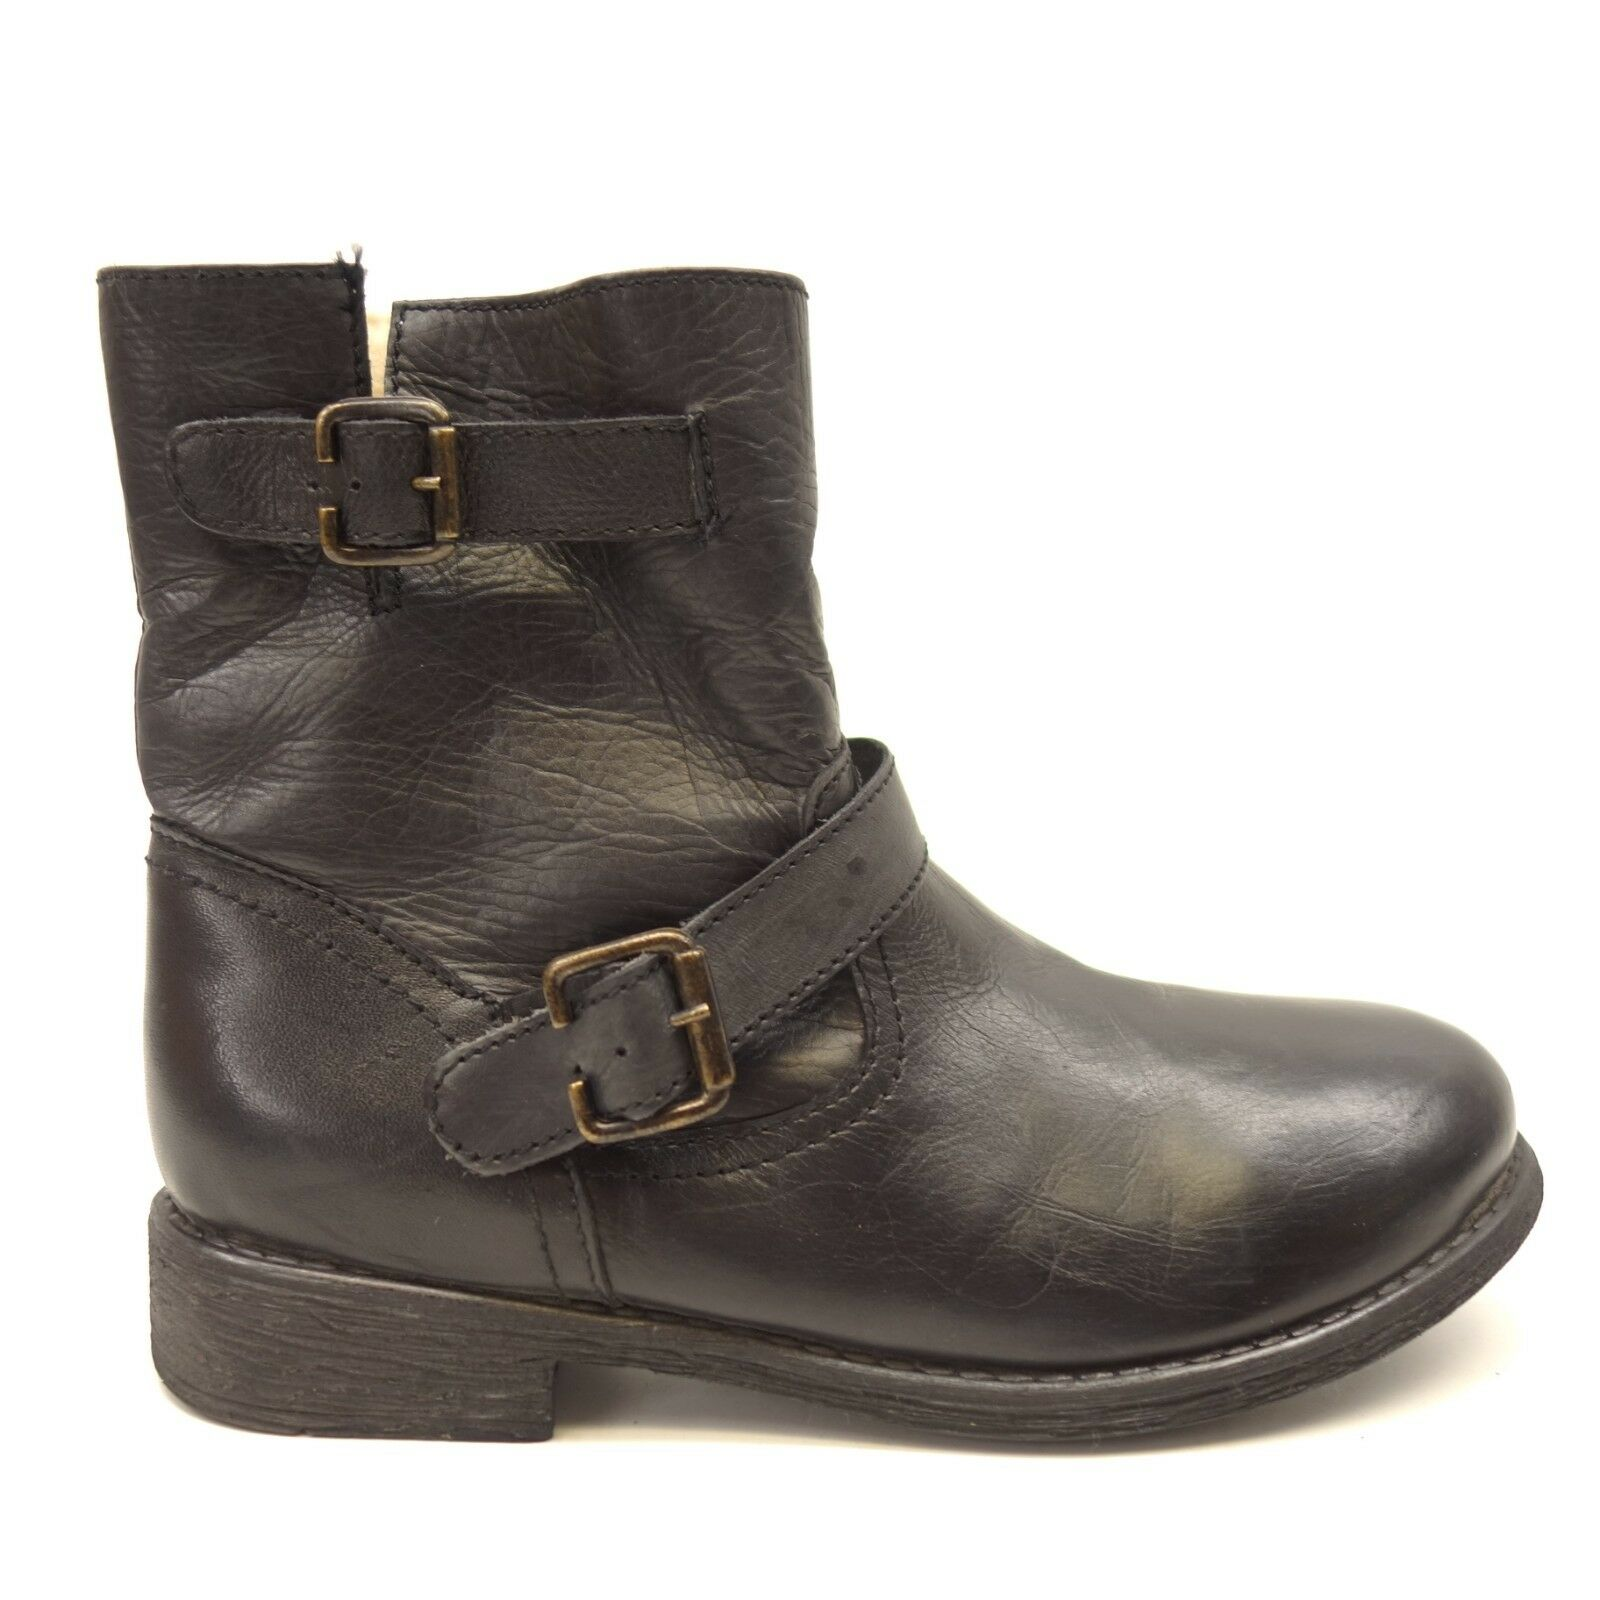 ZIGI Soho Soho Soho Womens Black Moto Buckle Winter Hiking Ankle Bootie Boots US 7M 5d384a